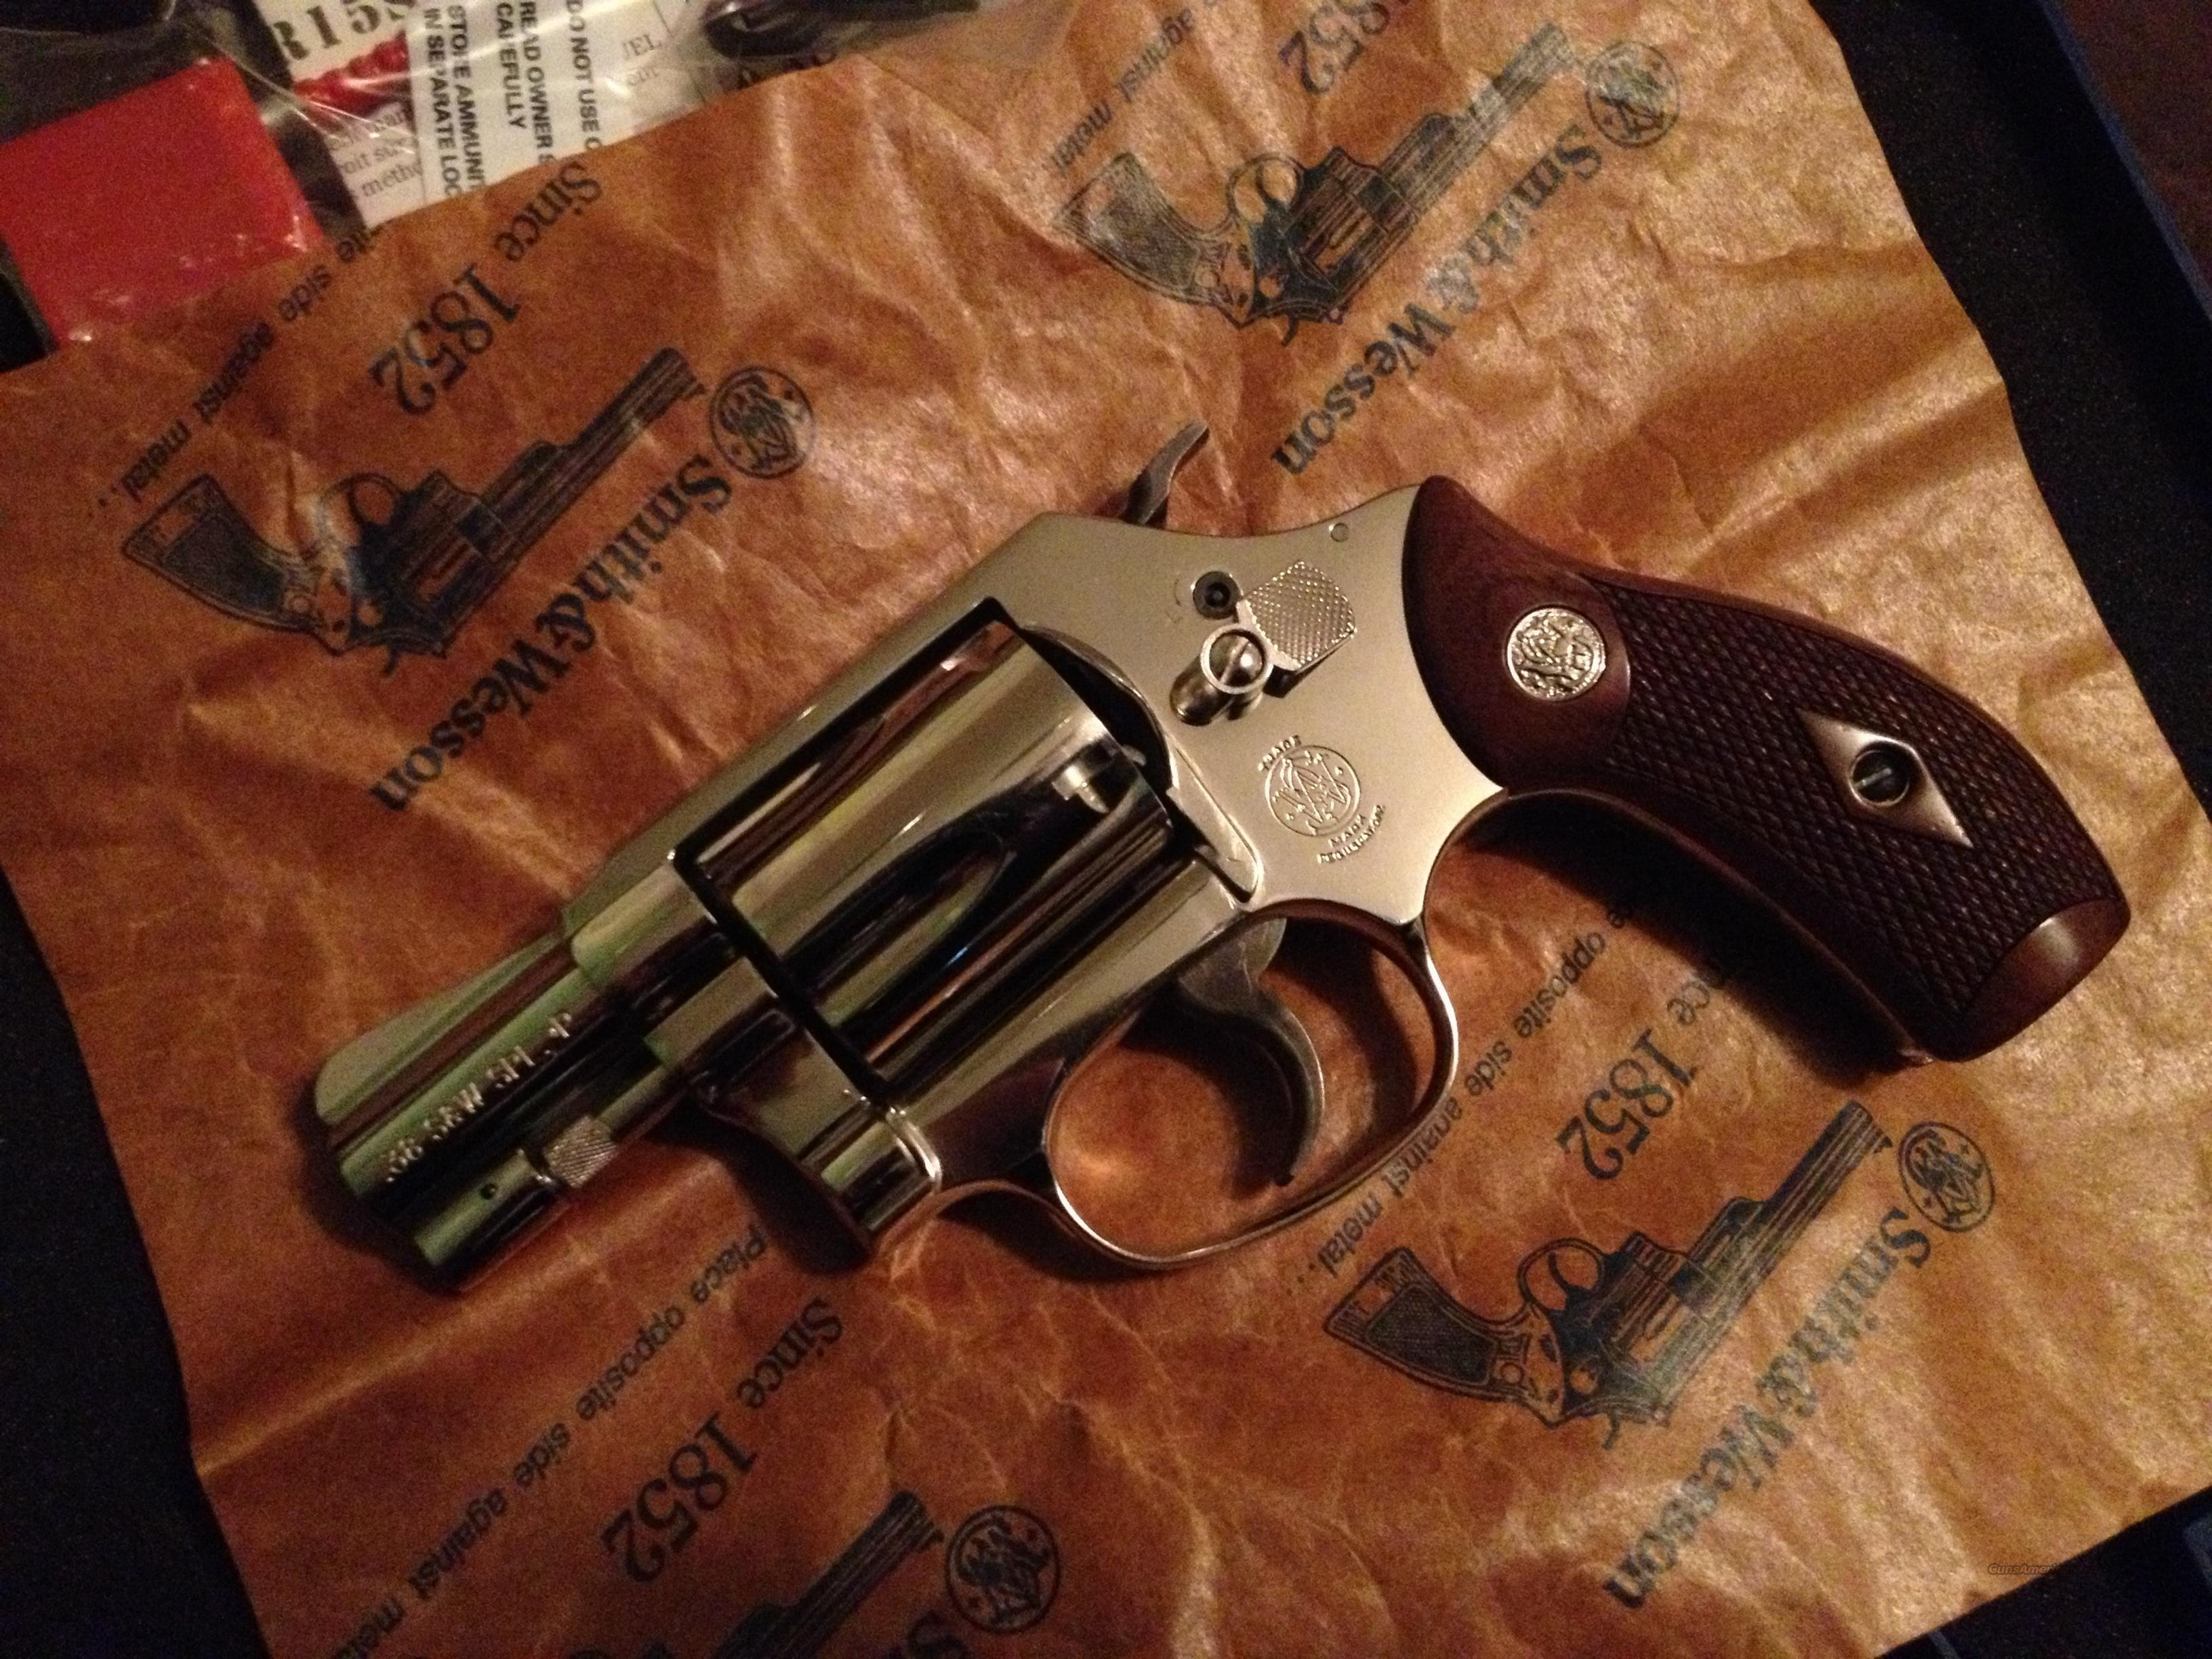 S&W Model 36 .38 Special +p stainless steel frame  Guns > Pistols > Smith & Wesson Revolvers > Pocket Pistols